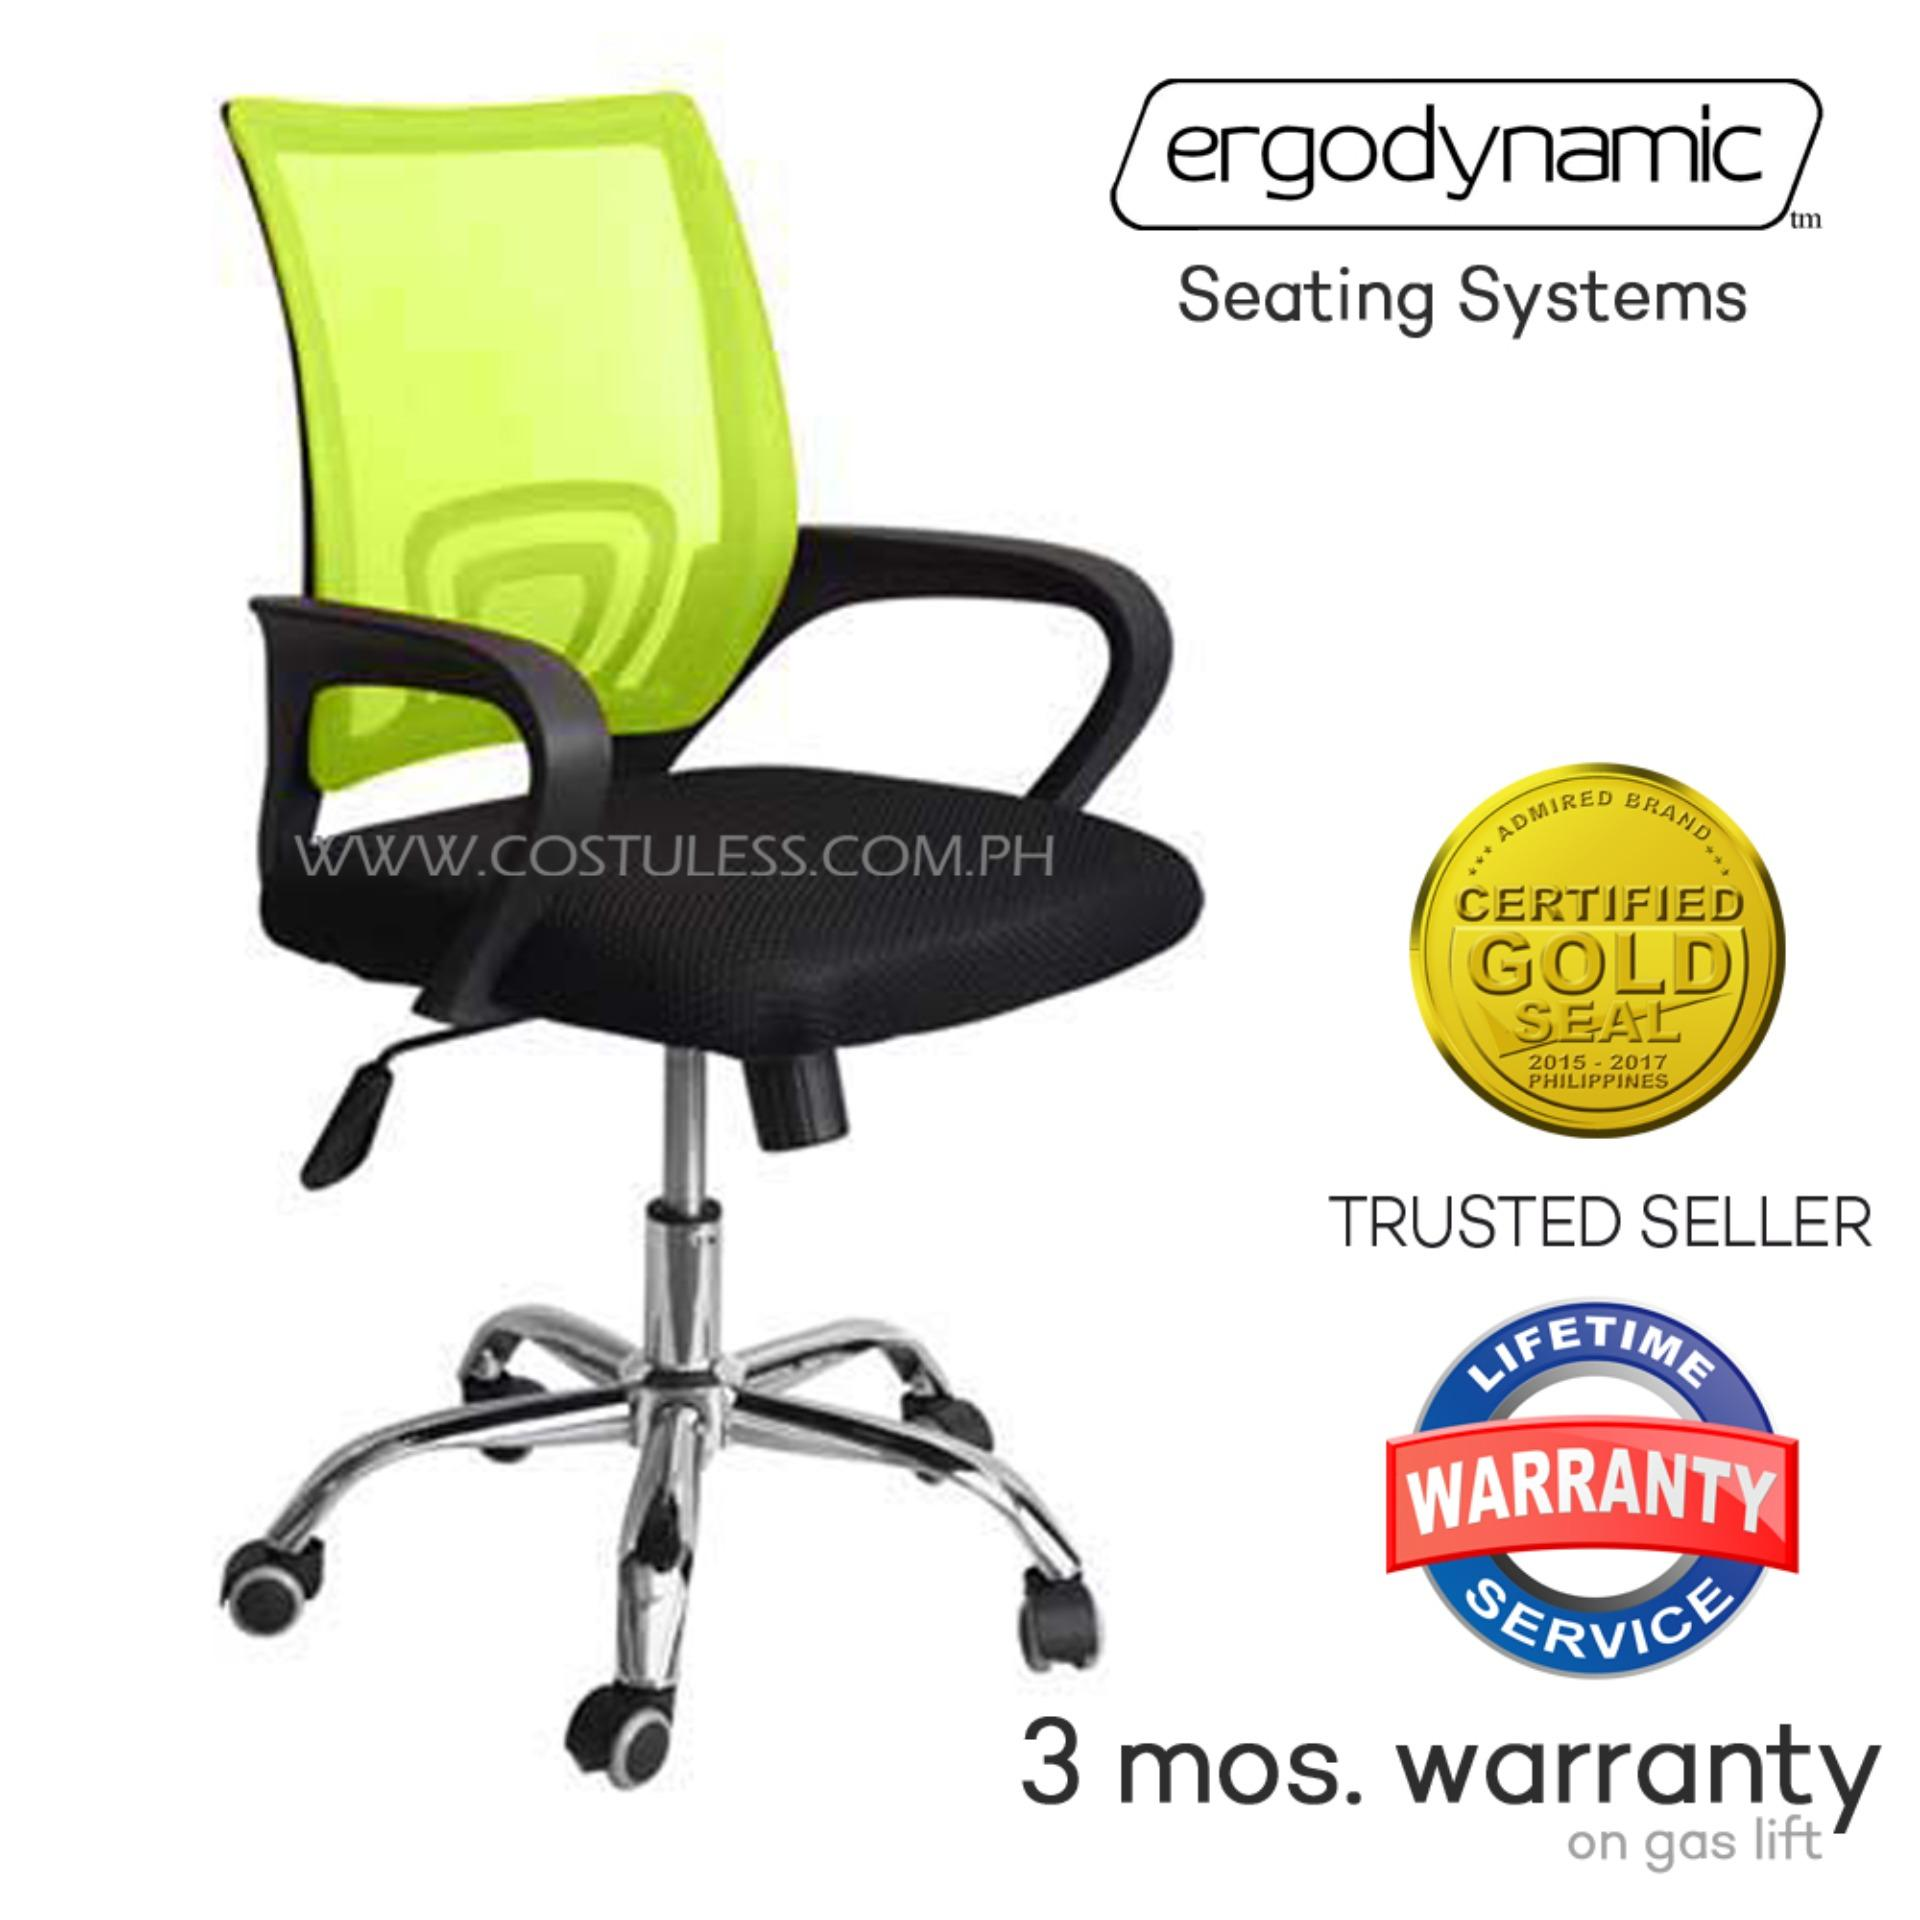 Erynamic Emc P1 Grn Mesh Chair 360 Swivel Function Office Mid Back Staff